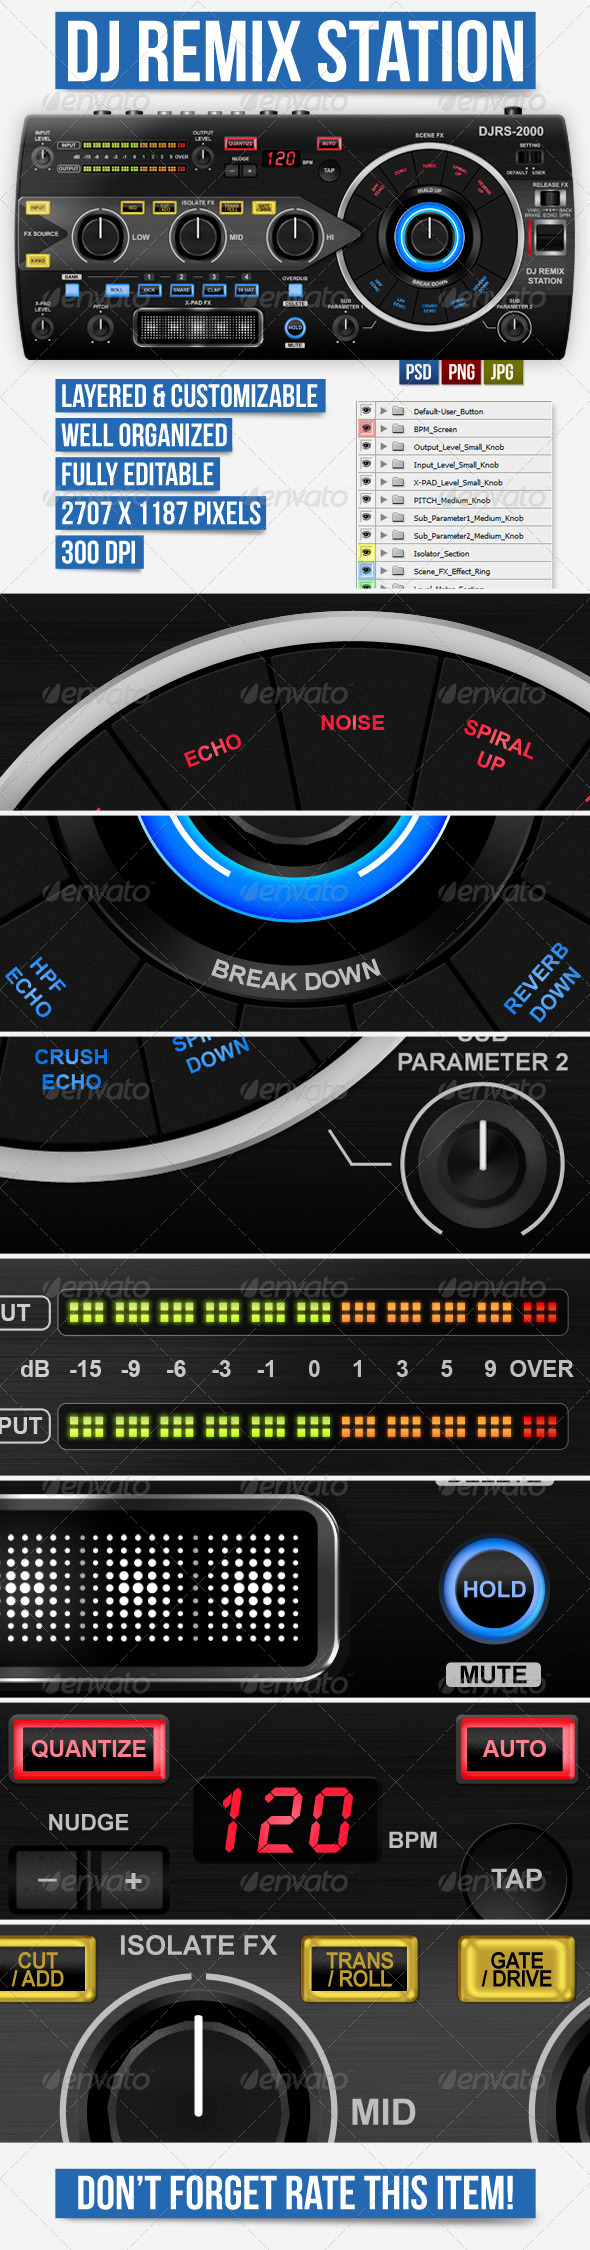 GraphicRiver DJ Remix Station UI 3992766